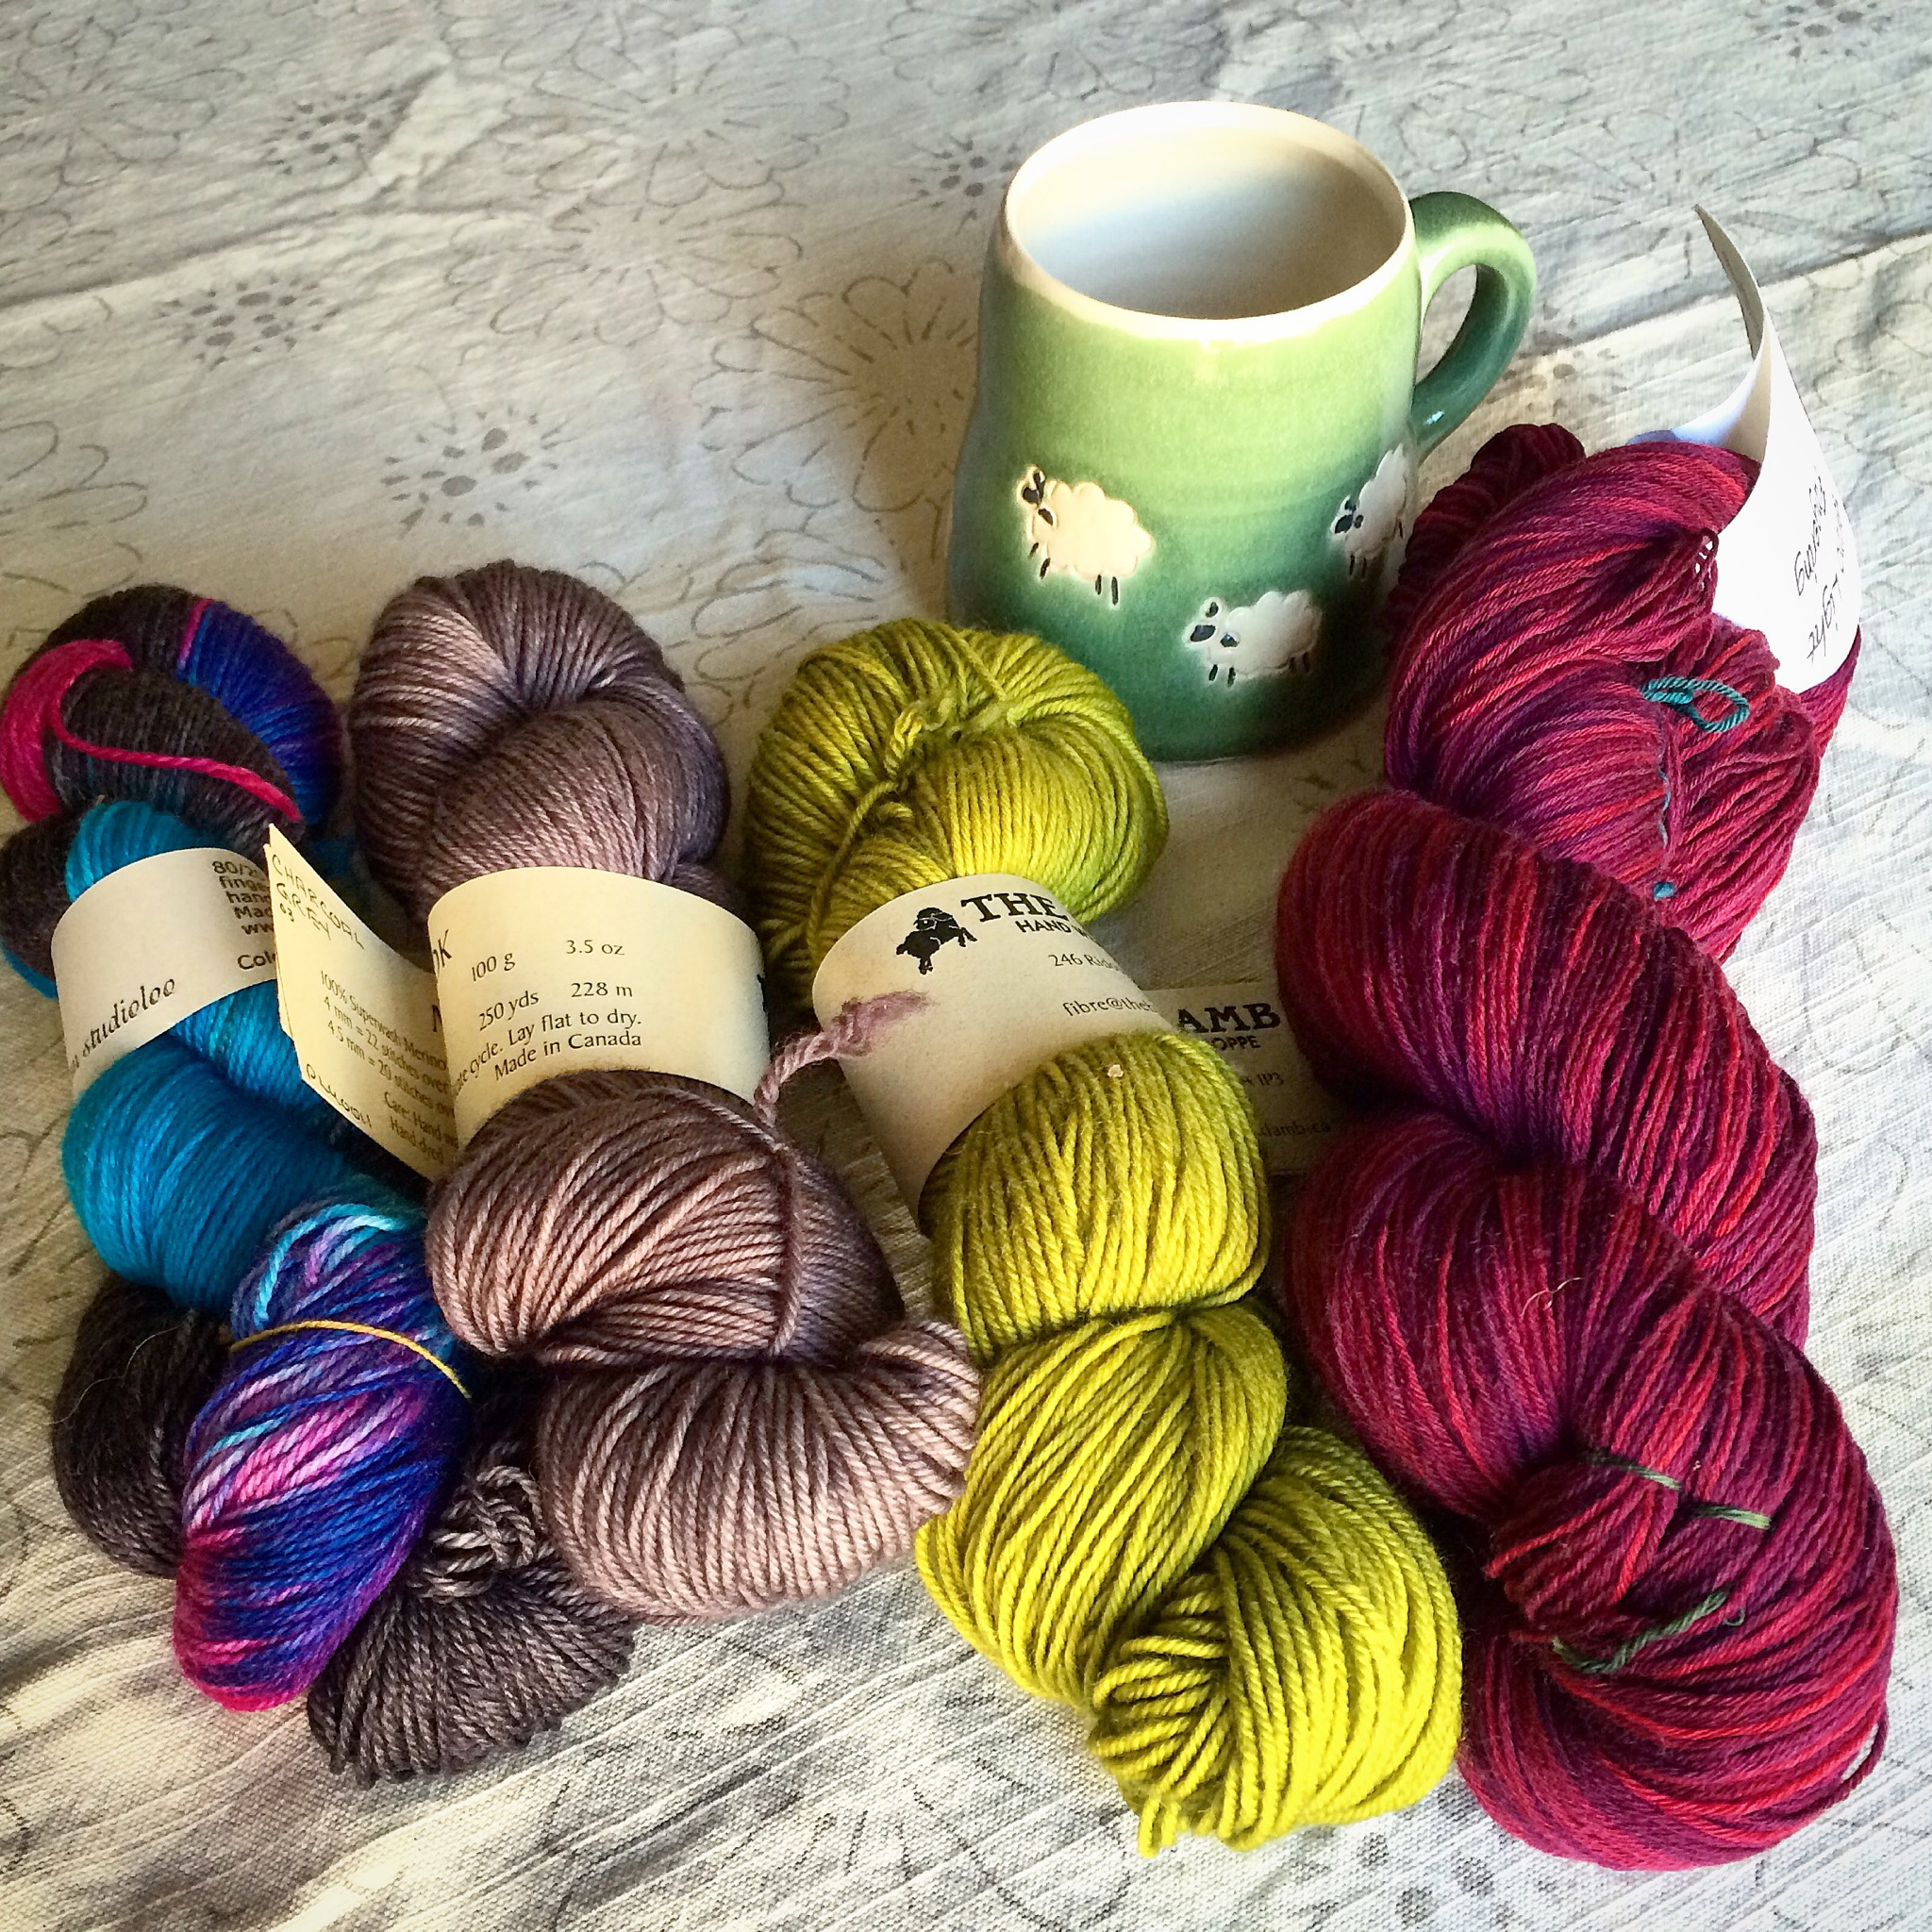 4 skeins of yarn and a hand-crafted mug